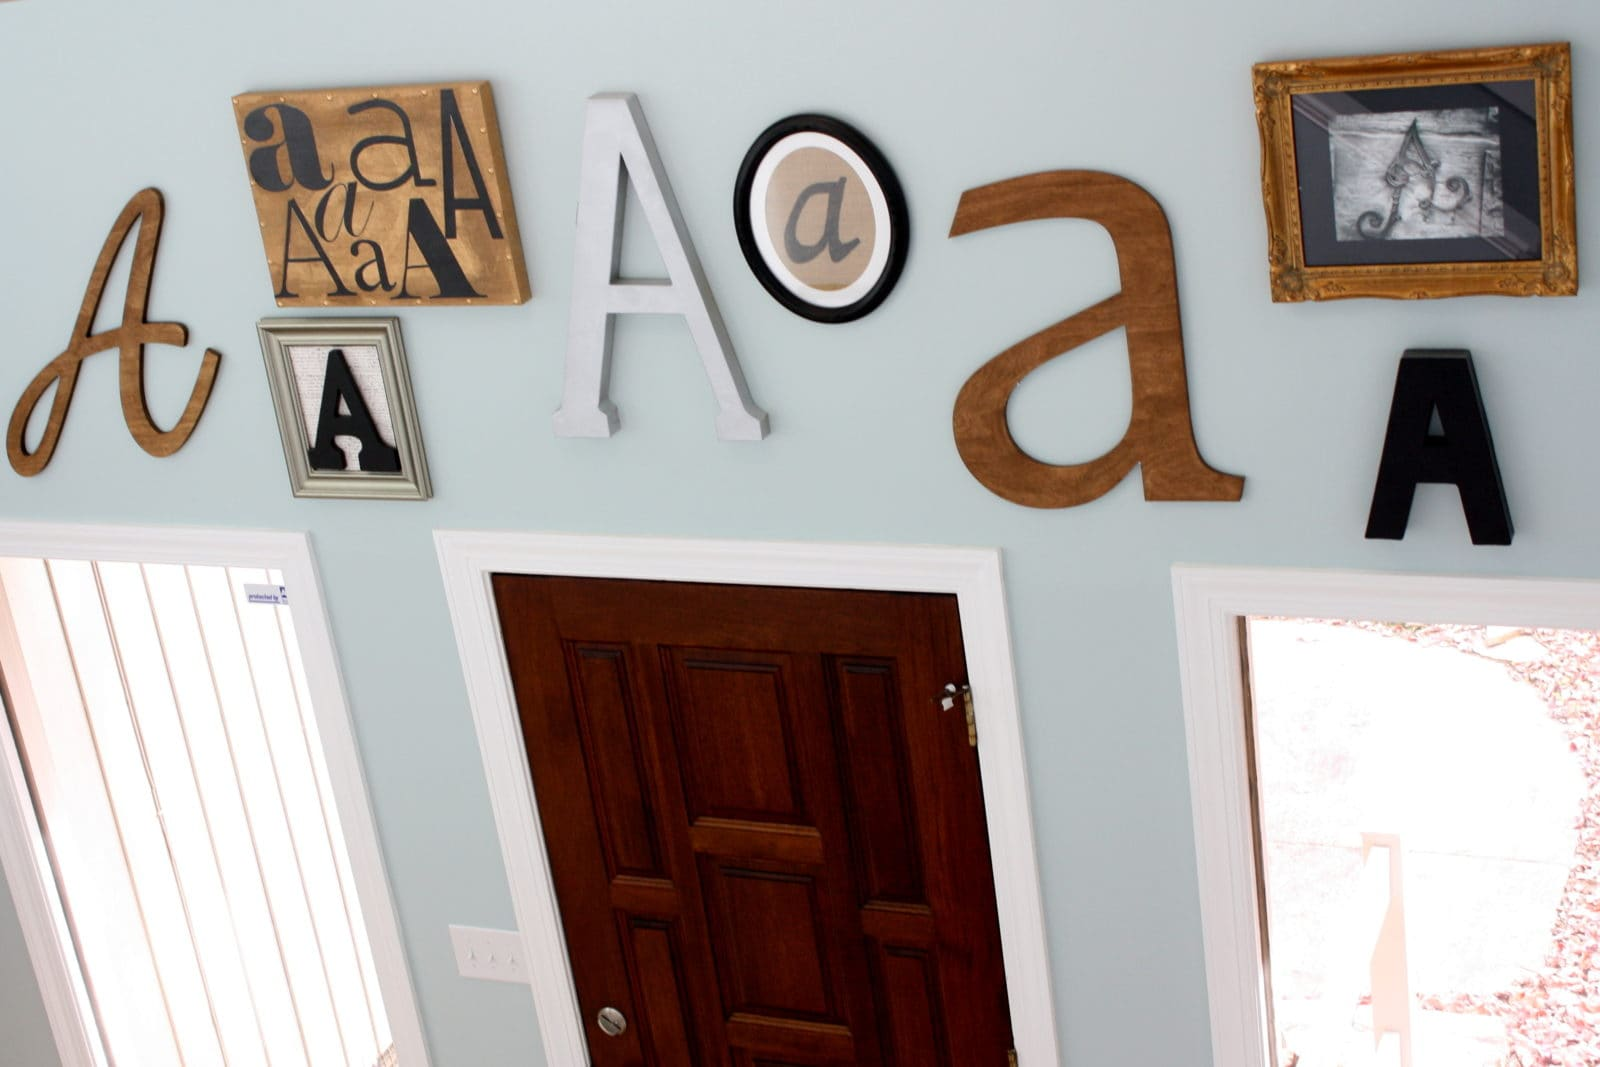 How to Create Your Own Monogram Gallery Wall A step-by-step tutorial